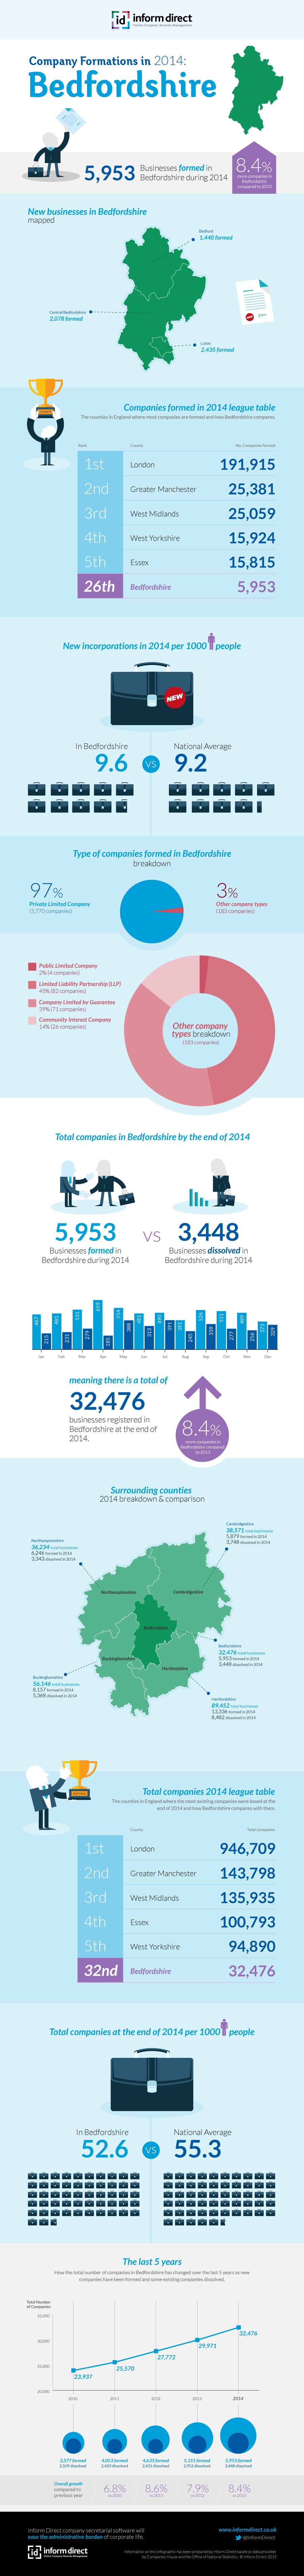 Inform Direct - Company Formations in Bedfordshire 2014 Infographic